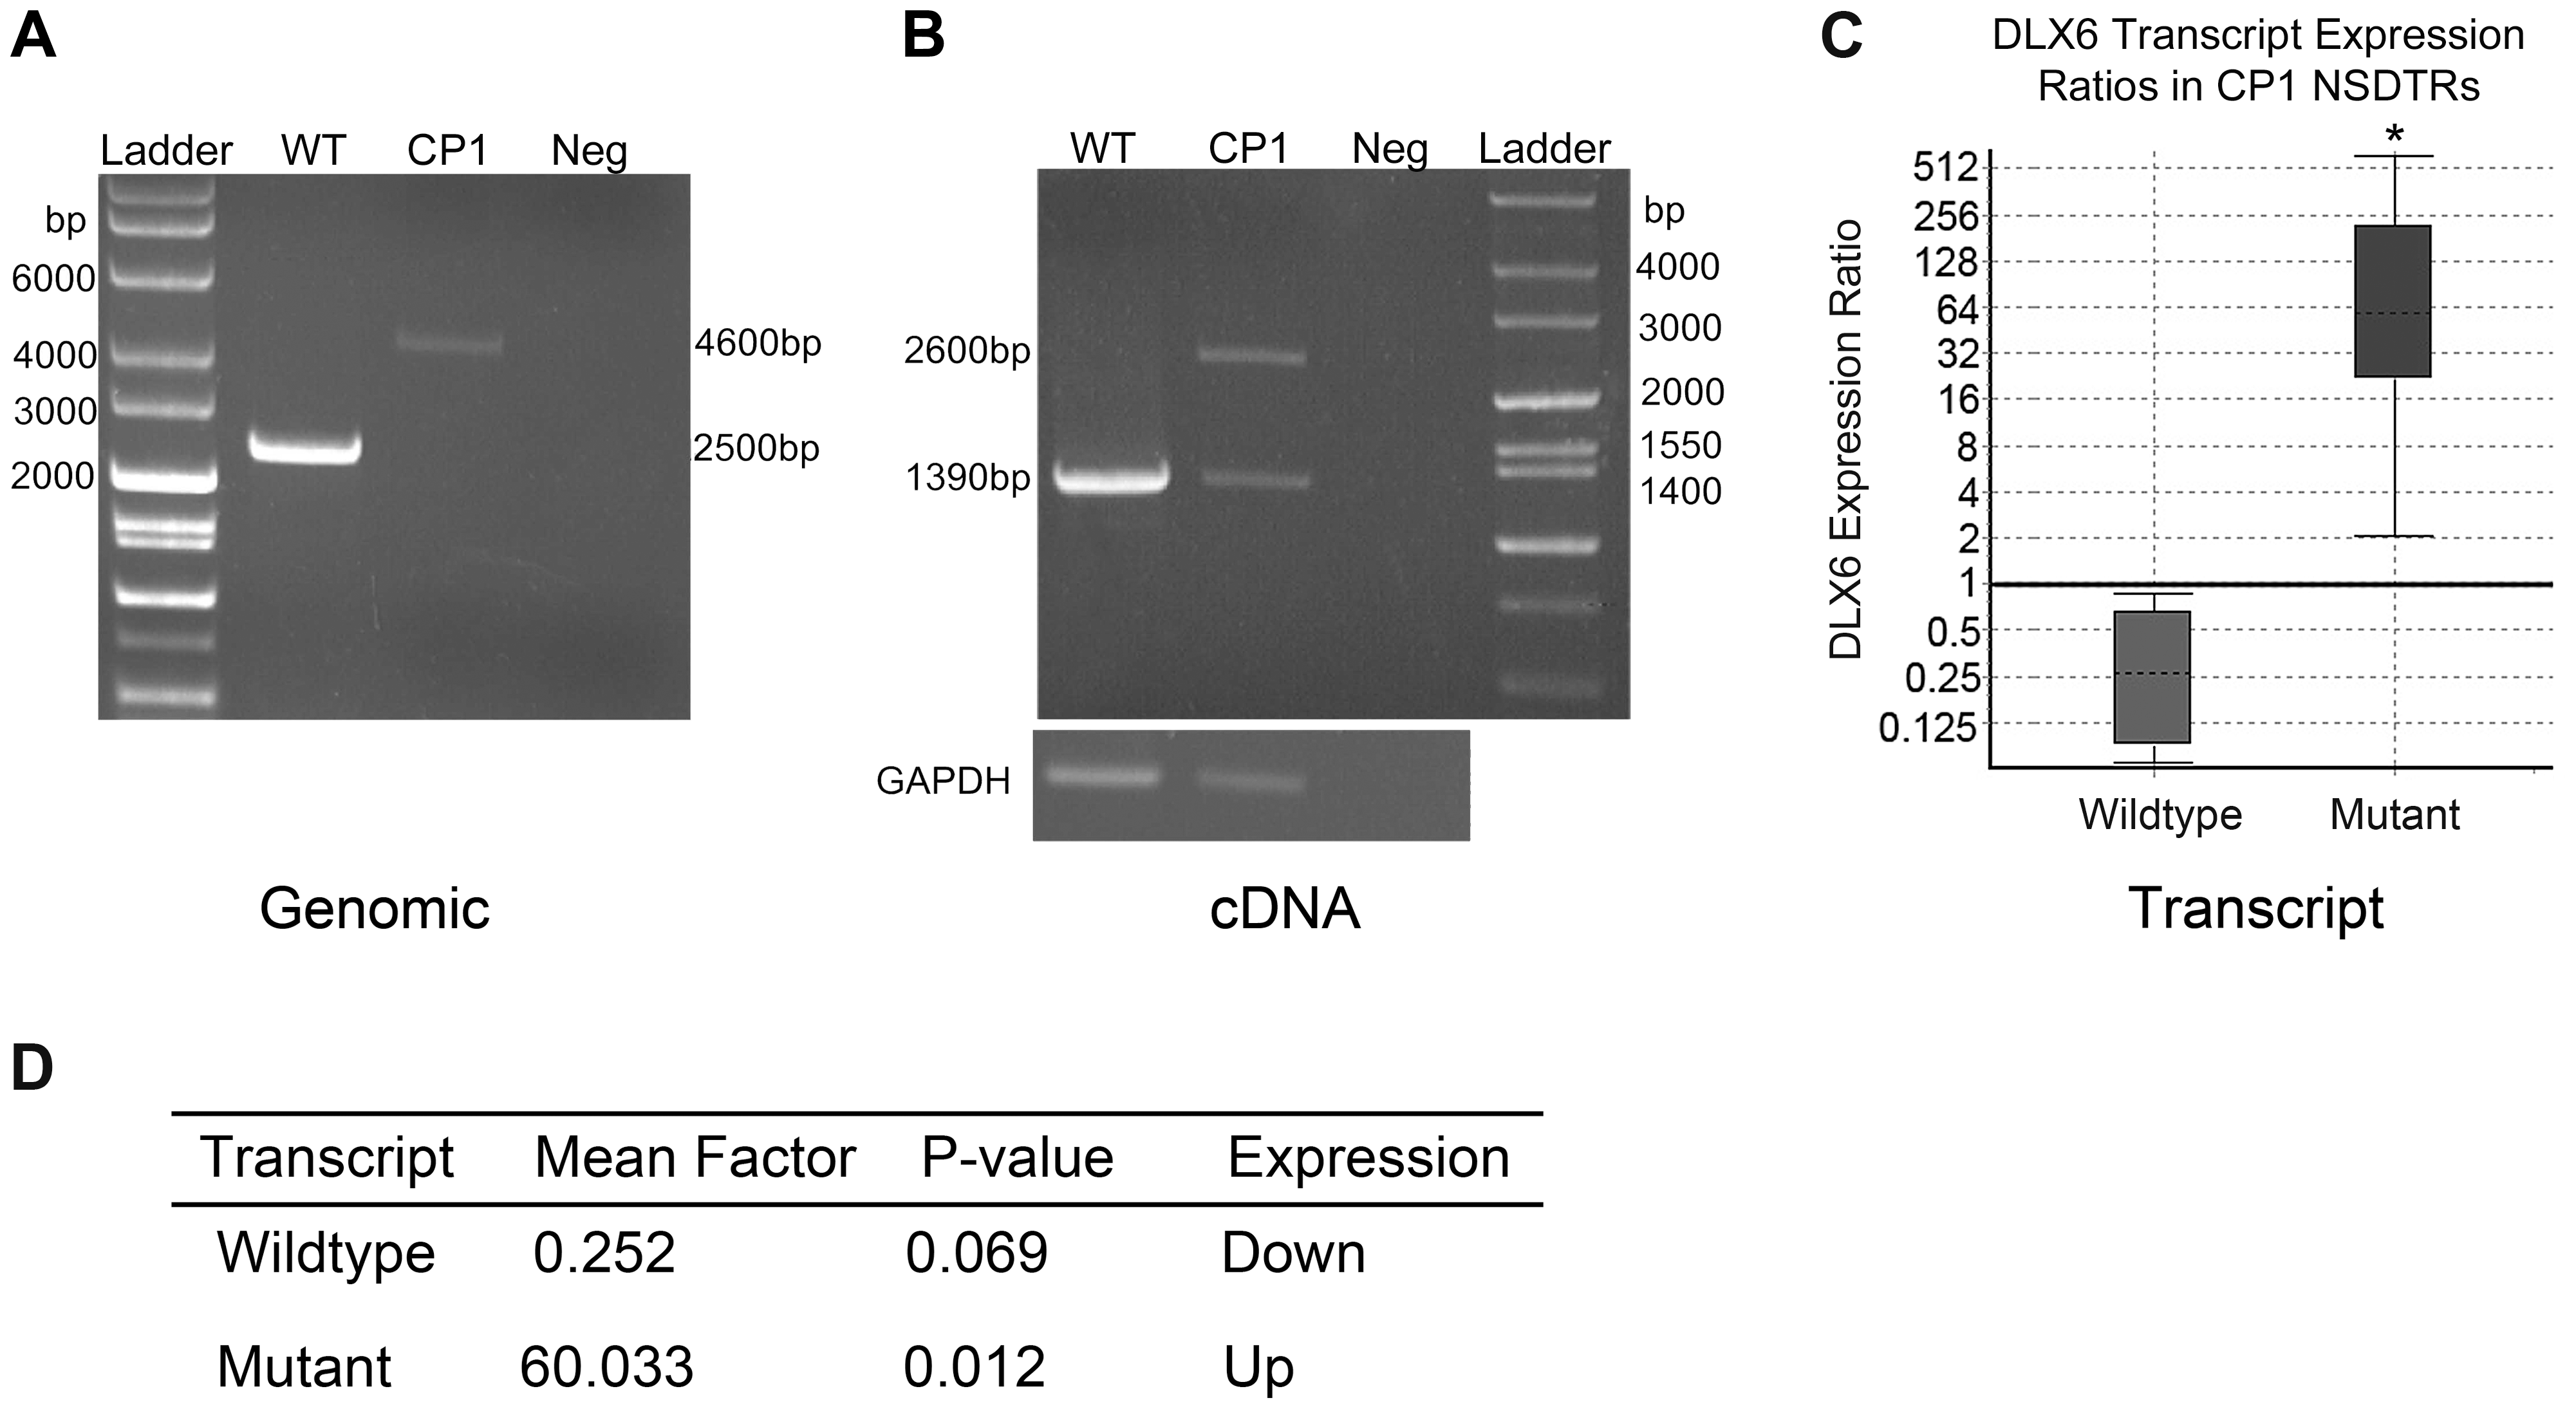 PCR amplification and expression analysis of LINE insertion in CP1 and WT NSDTRs.